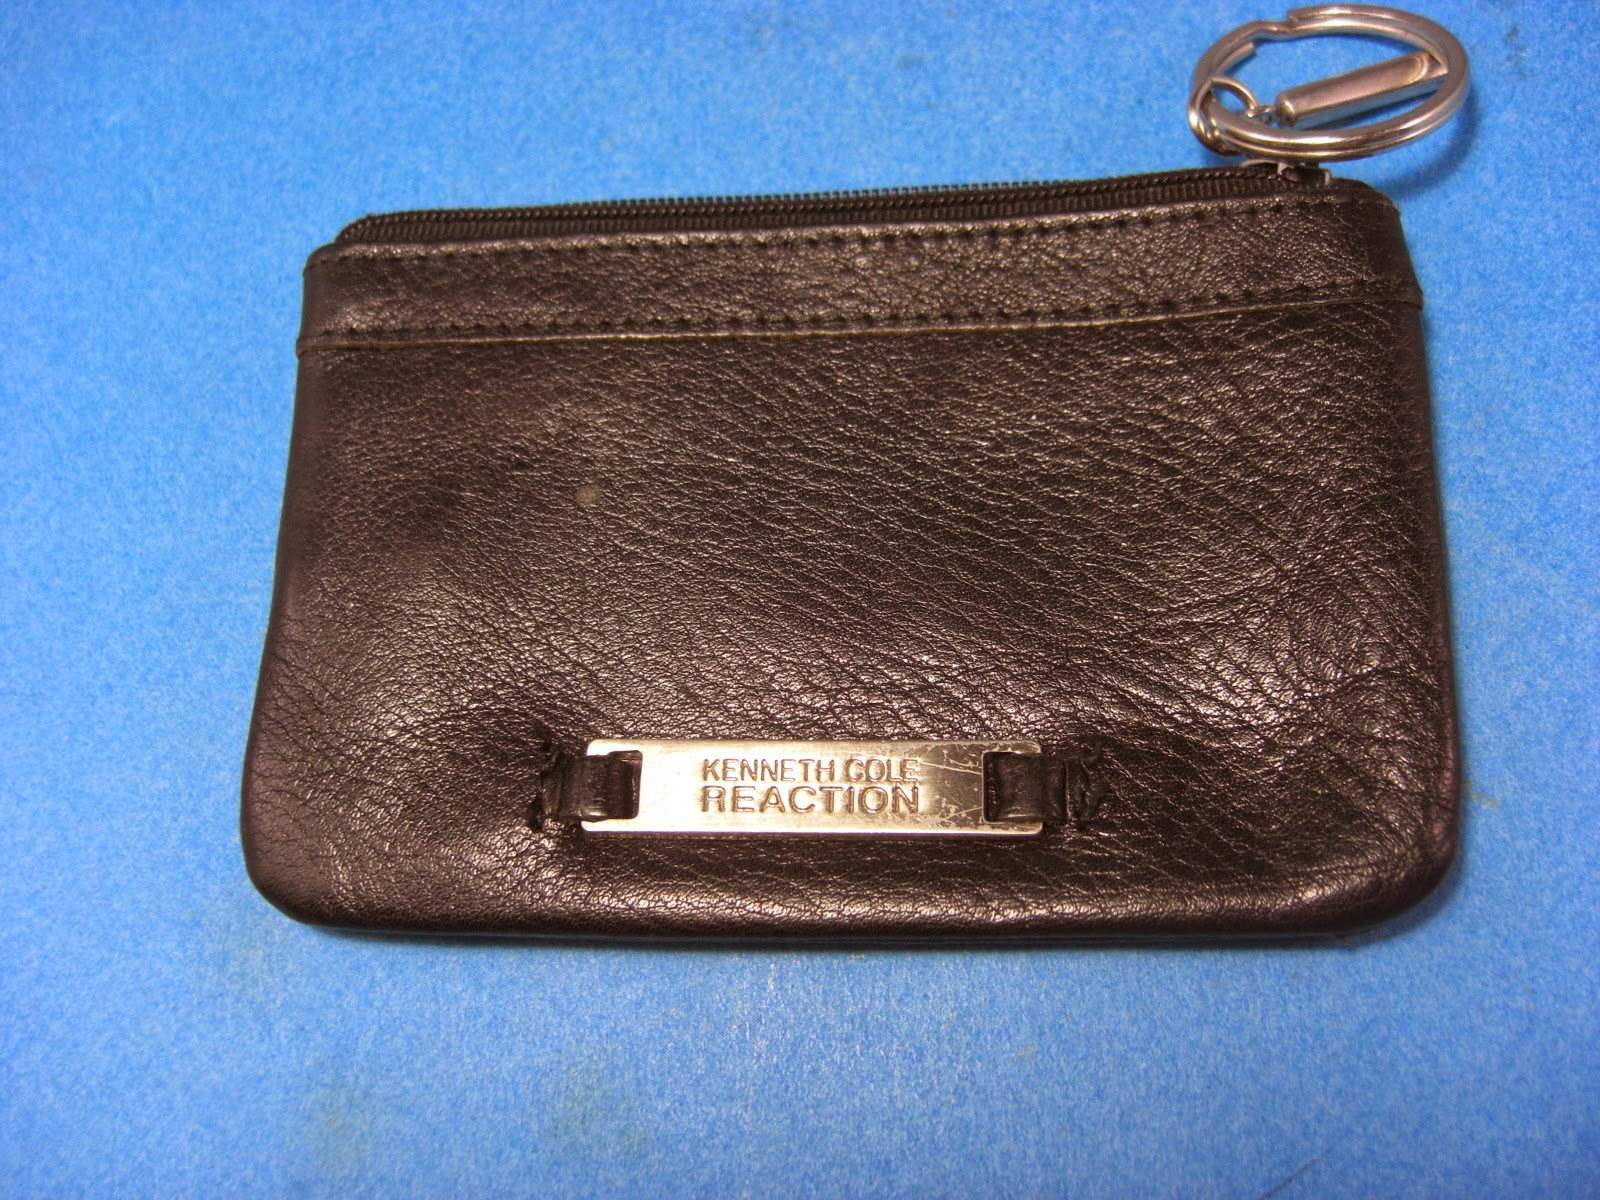 http://bargaincart.ecrater.com/p/22085792/ladies-kenneth-cole-reaction-black